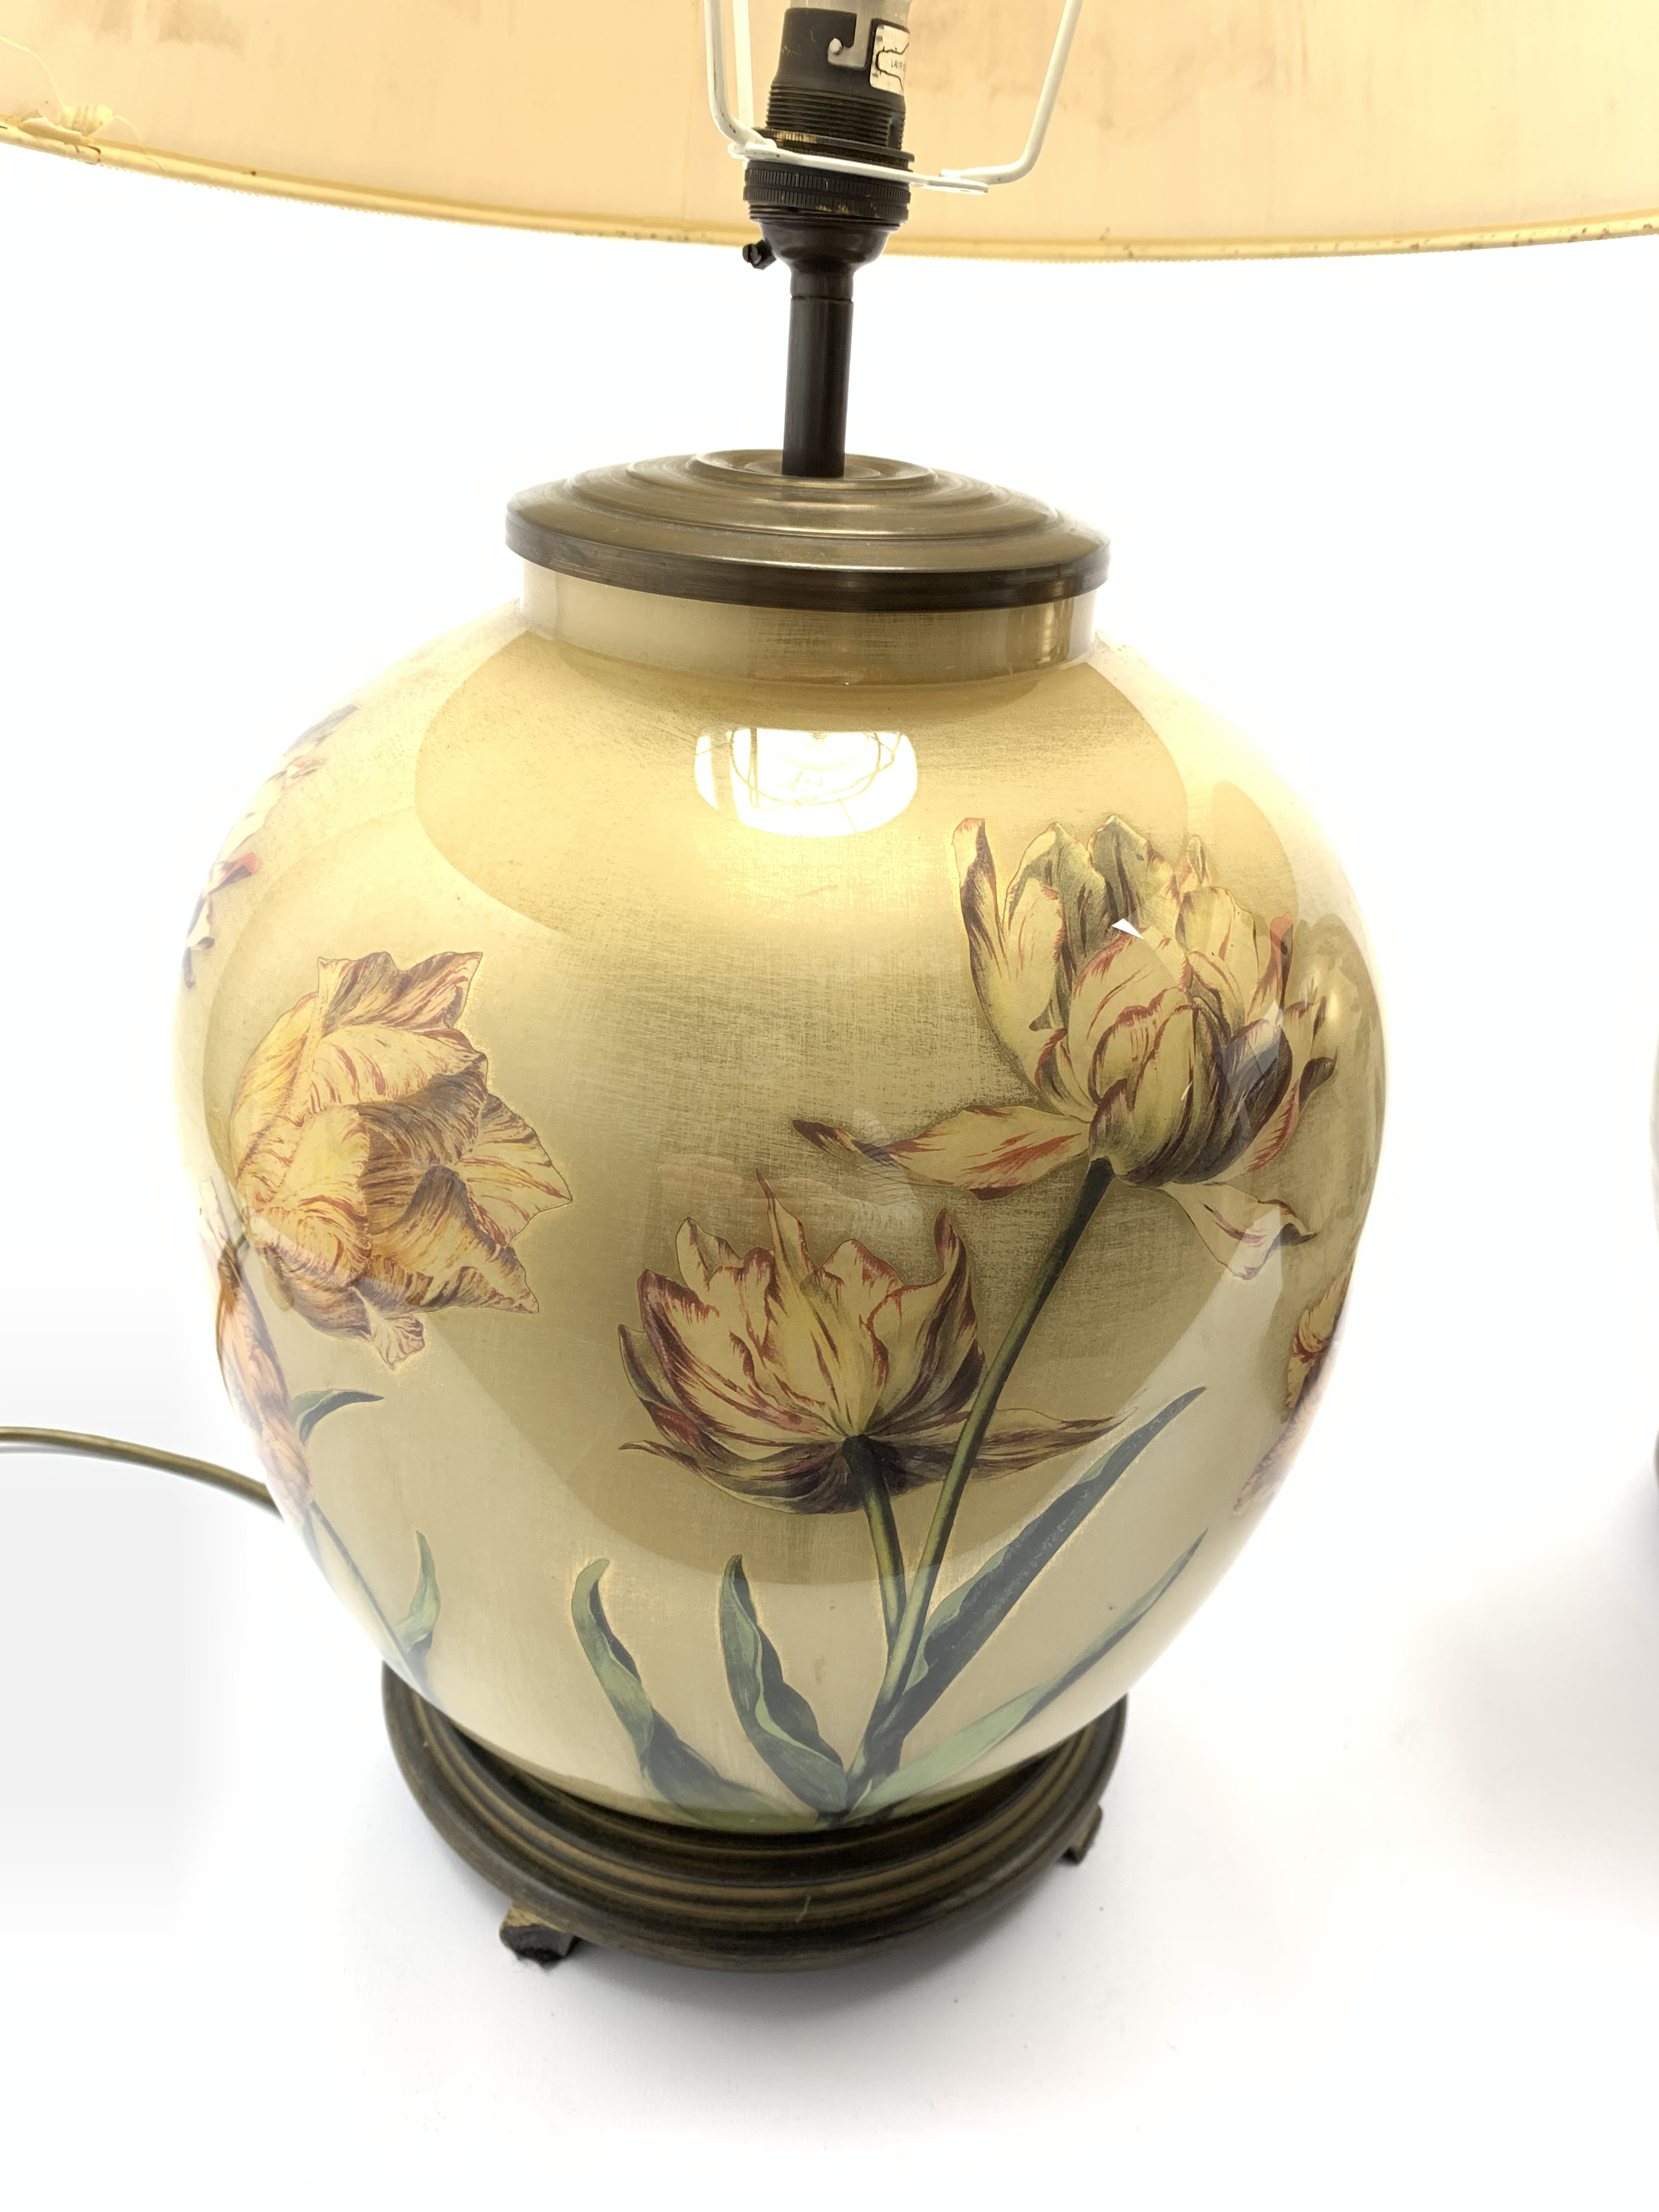 A near pair of glass table lamps having floral decoration on lustre ground, with pleated shades, H66 - Image 4 of 5